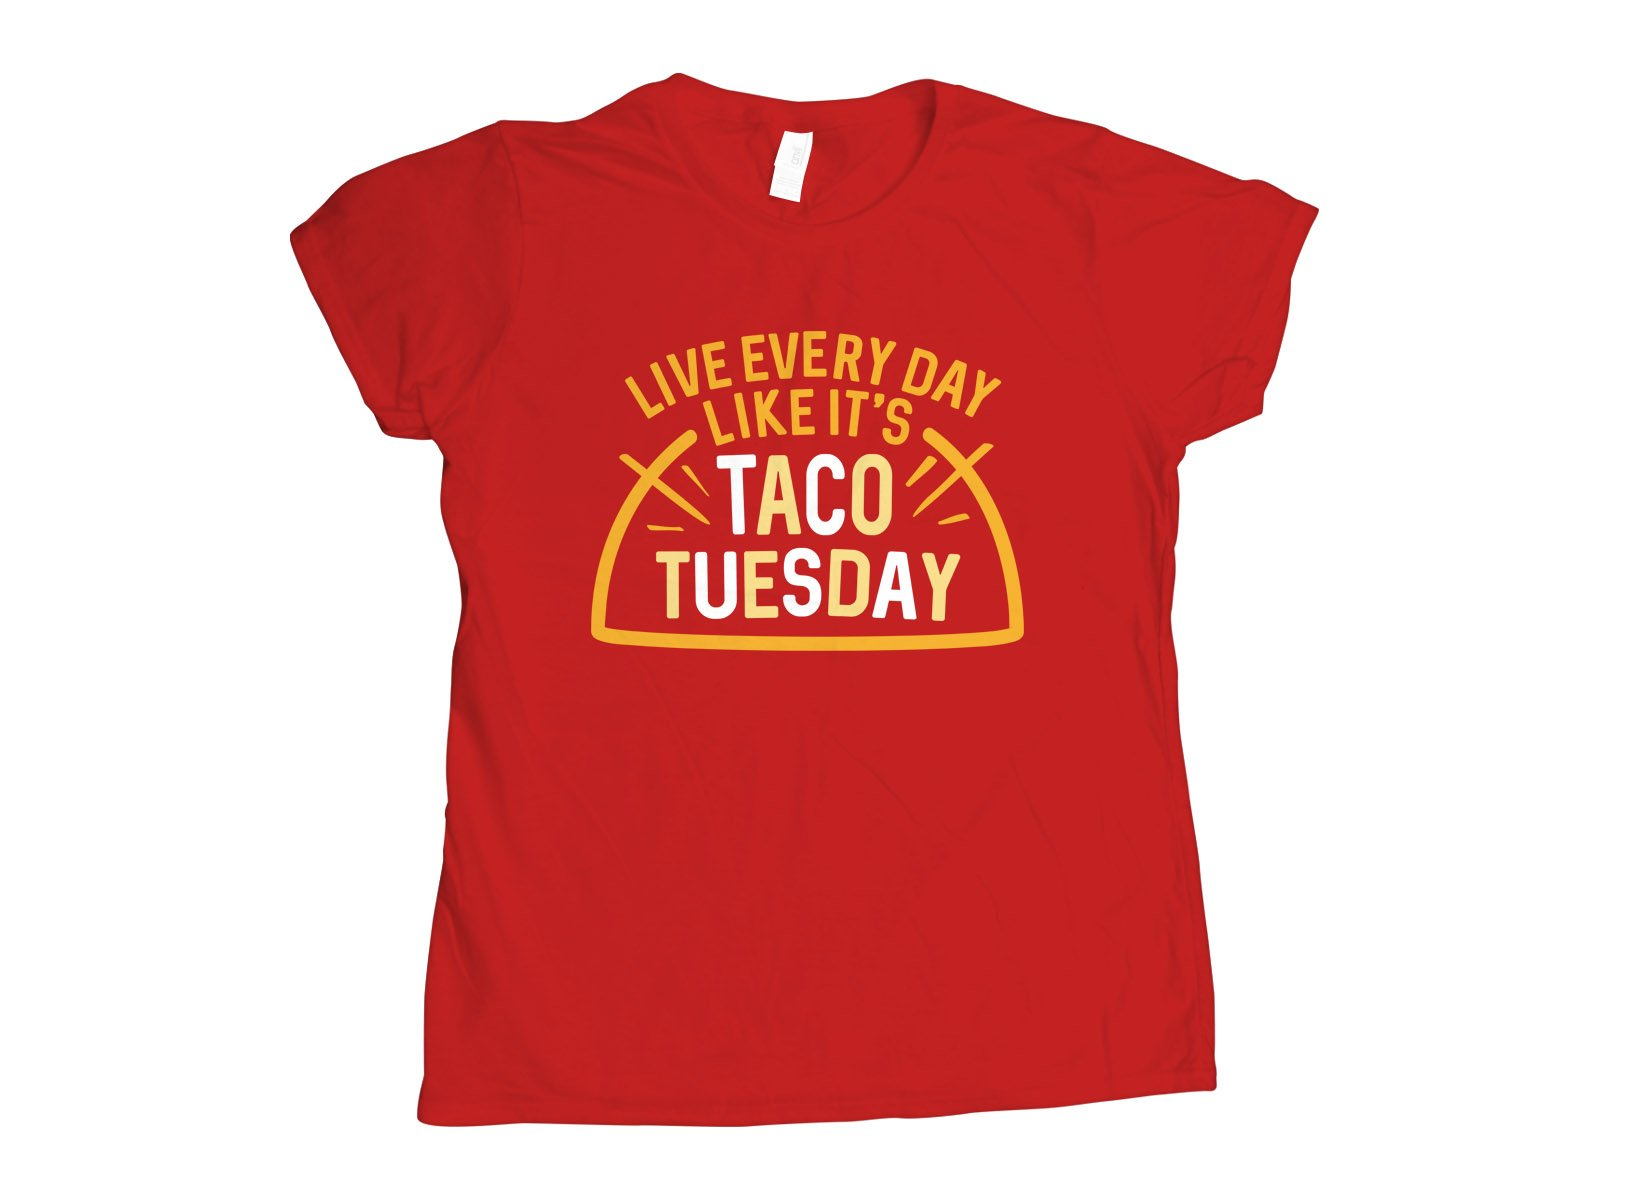 Taco Tuesday on Womens T-Shirt